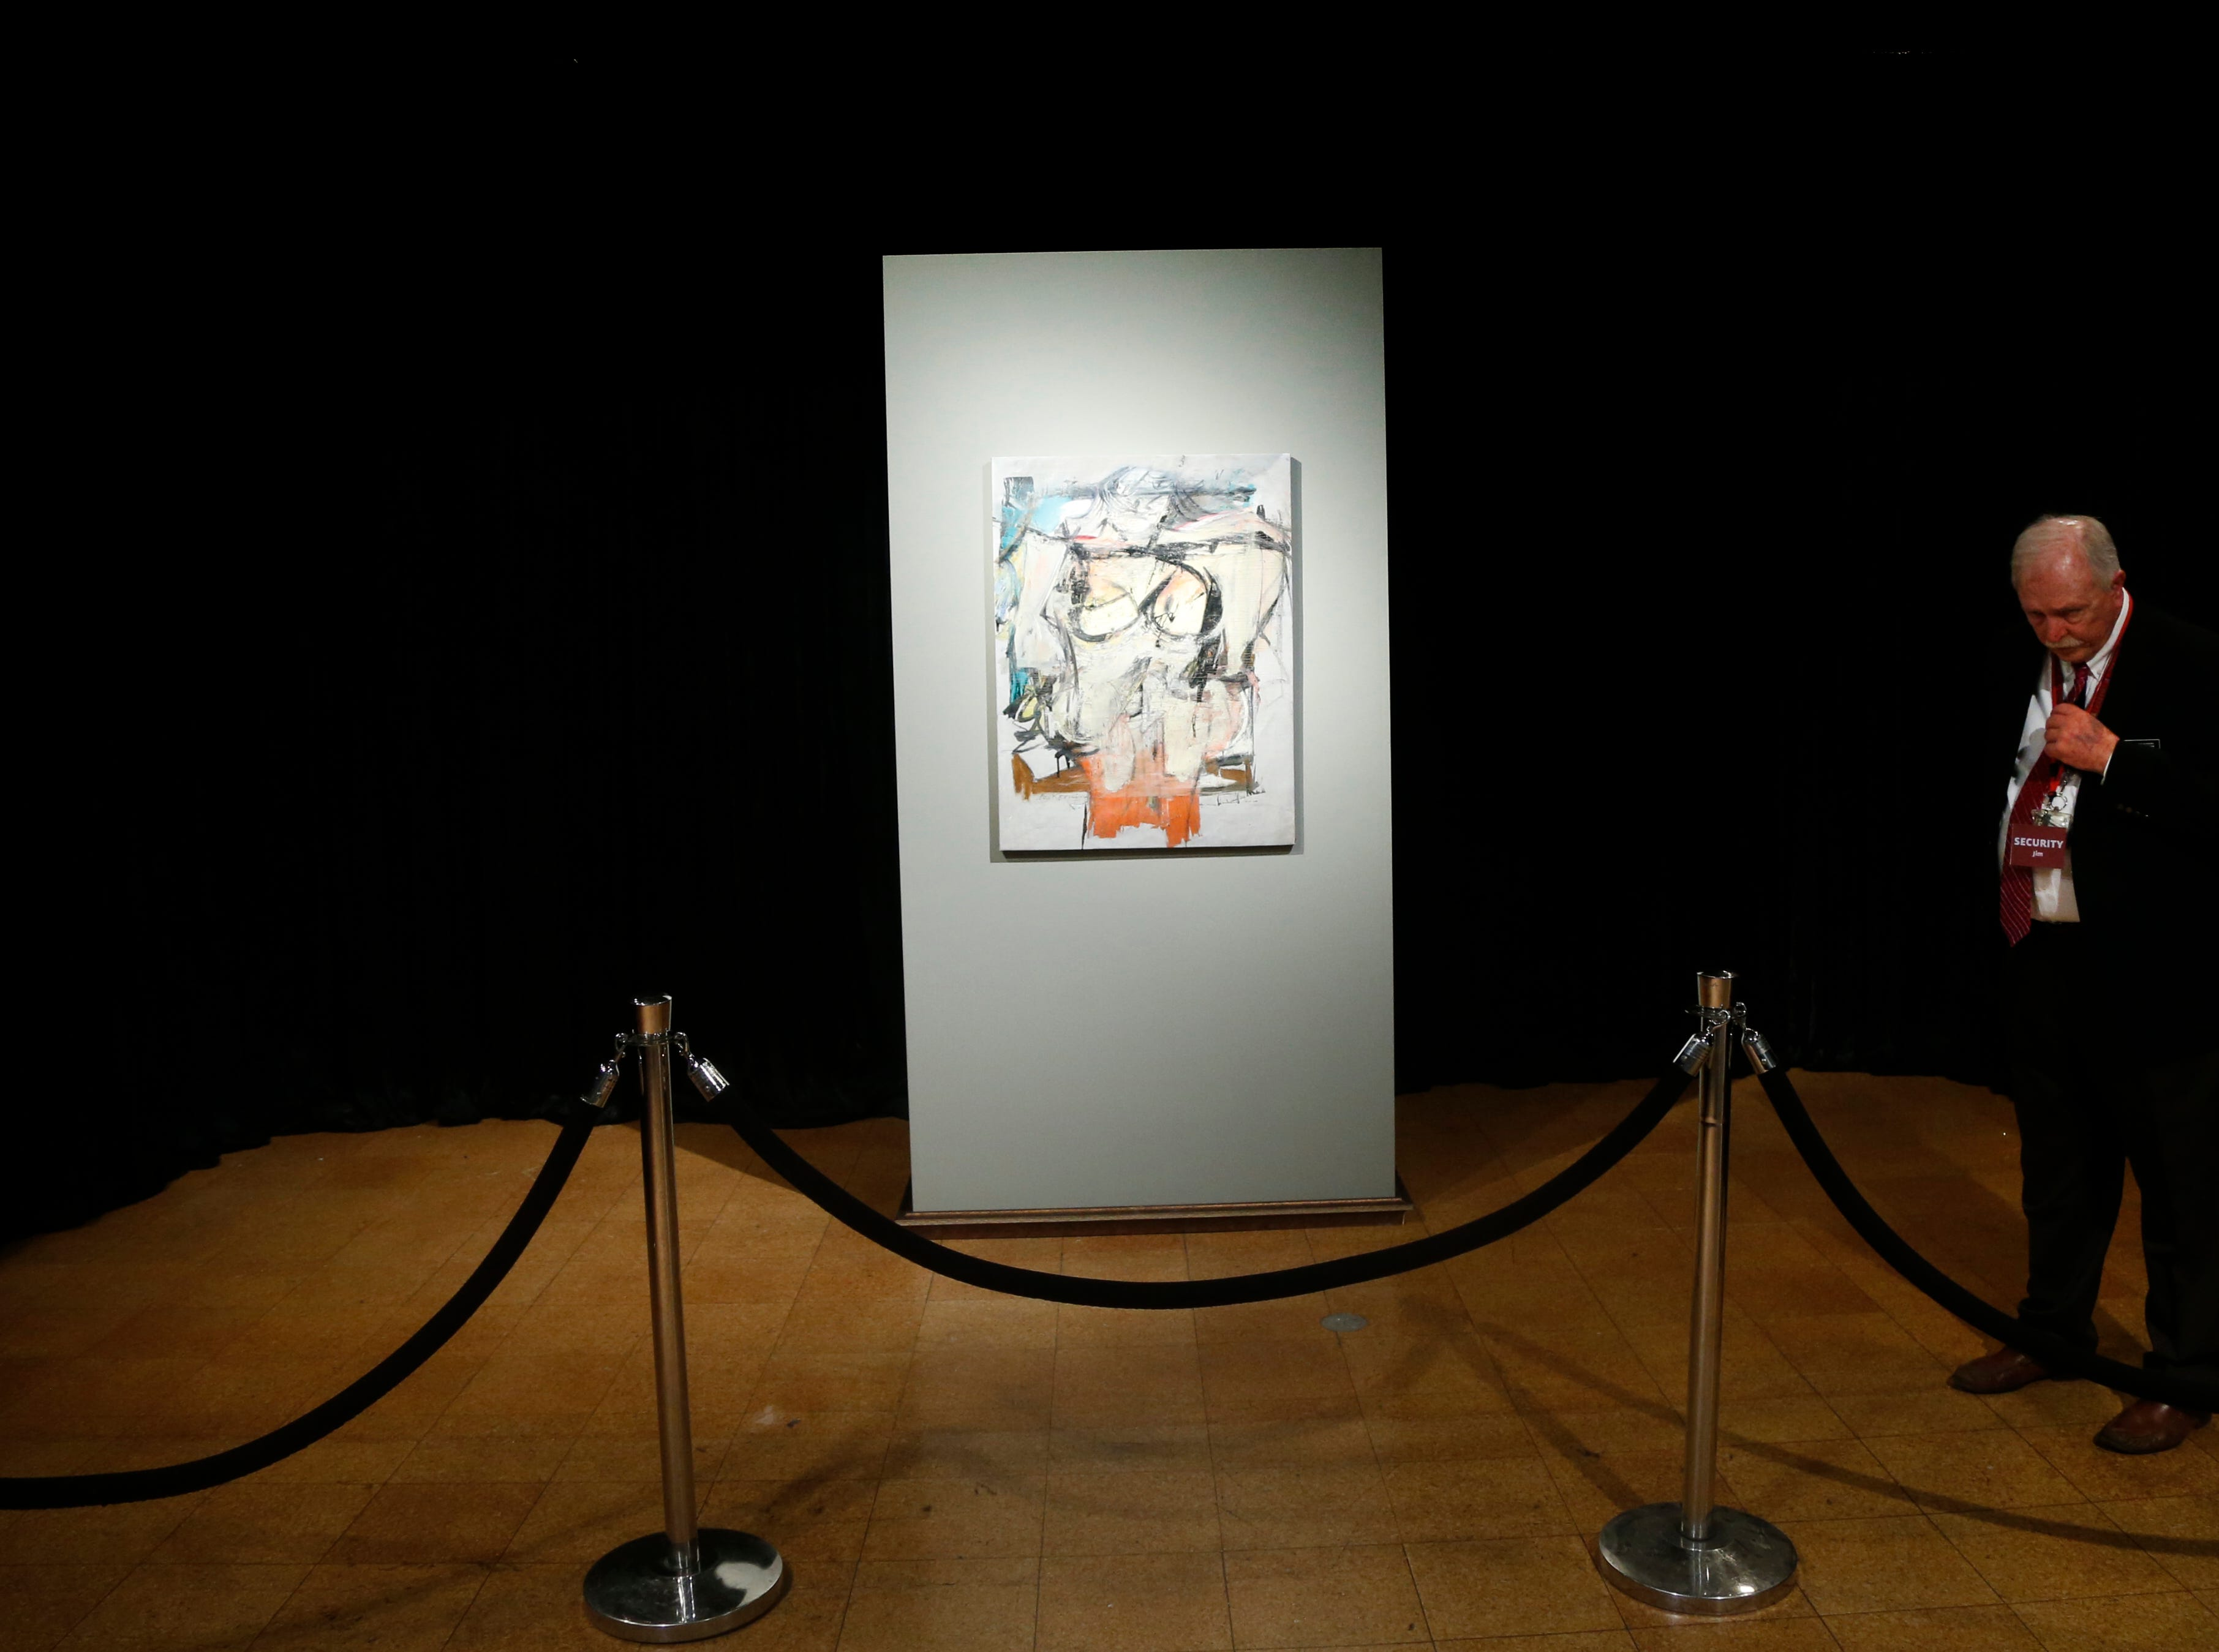 """Waiting for the exhibit to open, security guard Louis Estrella watches over Willem de Kooning's """"Woman-Ochre."""" Stolen in 1985, the painting, recovered in 2017, draws a crowd at the University of Arizona Museum of Art in Tucson on March 17, 2019."""